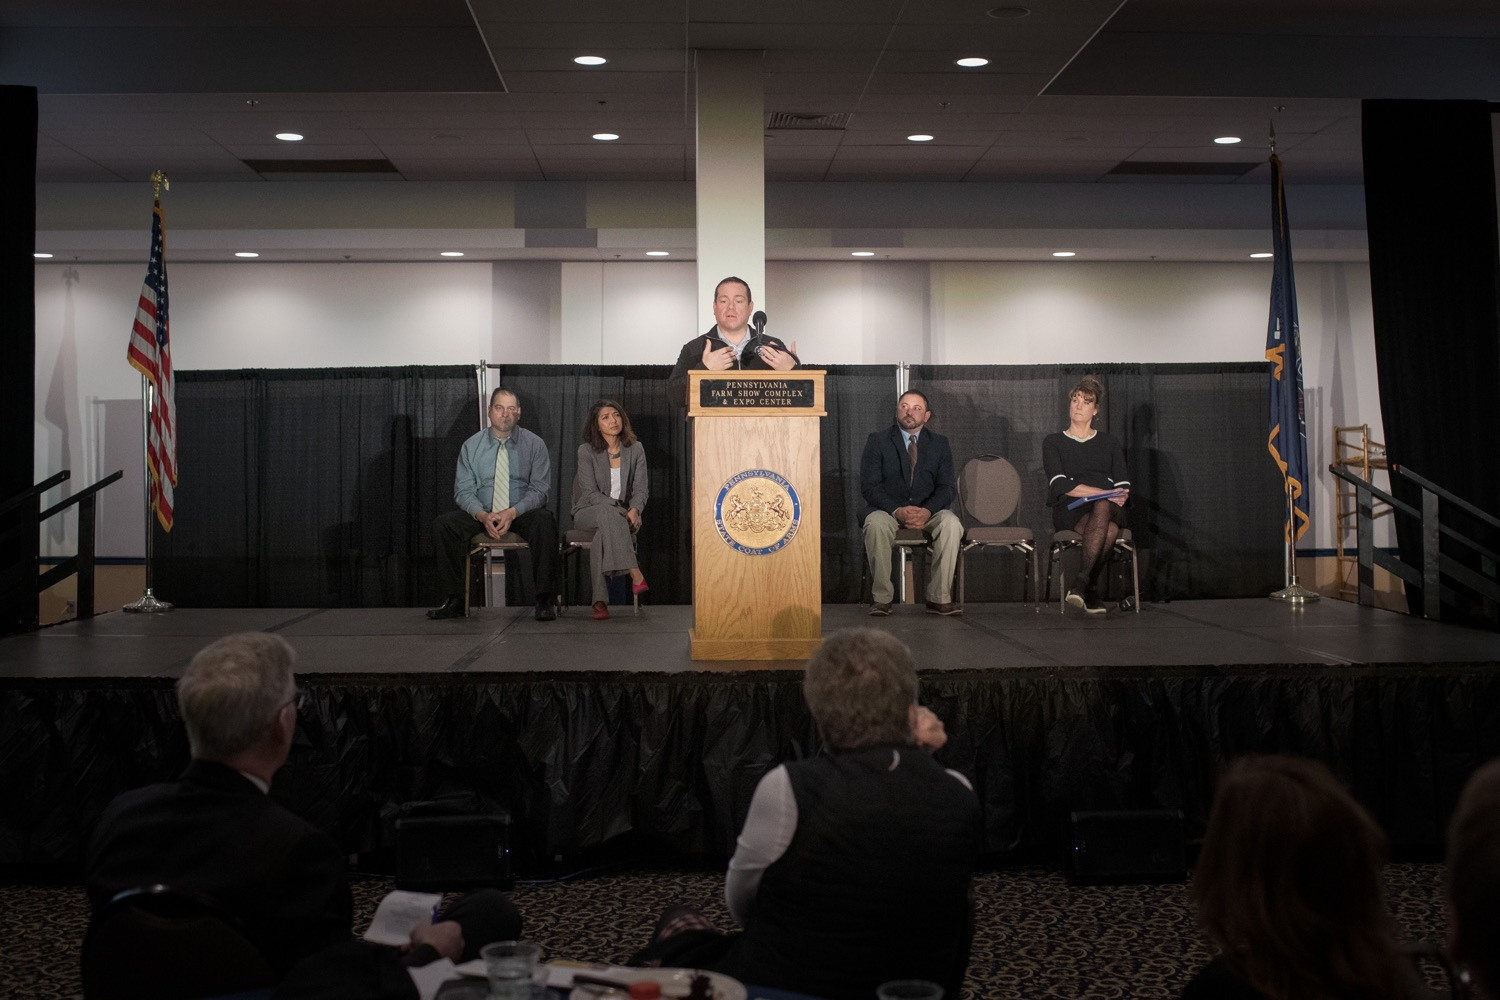 """<a href=""""https://filesource.wostreaming.net/commonwealthofpa/photo/17650_agric_public_officials_day_dz_020.jpg"""" target=""""_blank"""">⇣Download Photo<br></a>Inspiring Innovator Jason Frye of Pleasant Lane Farms speaks at Public Officials Day.  Addressing nearly 800 public officials at the Pennsylvania Farm Show today, Agriculture Secretary Russell Redding announced the opening of the last grant program made possible by the 2019 PA Farm Bill. The $1 million Farm Vitality Grant Program aims to enhance the long-term health and vitality of Pennsylvanias family farms. Harrisburg, PA  January 08, 2020"""